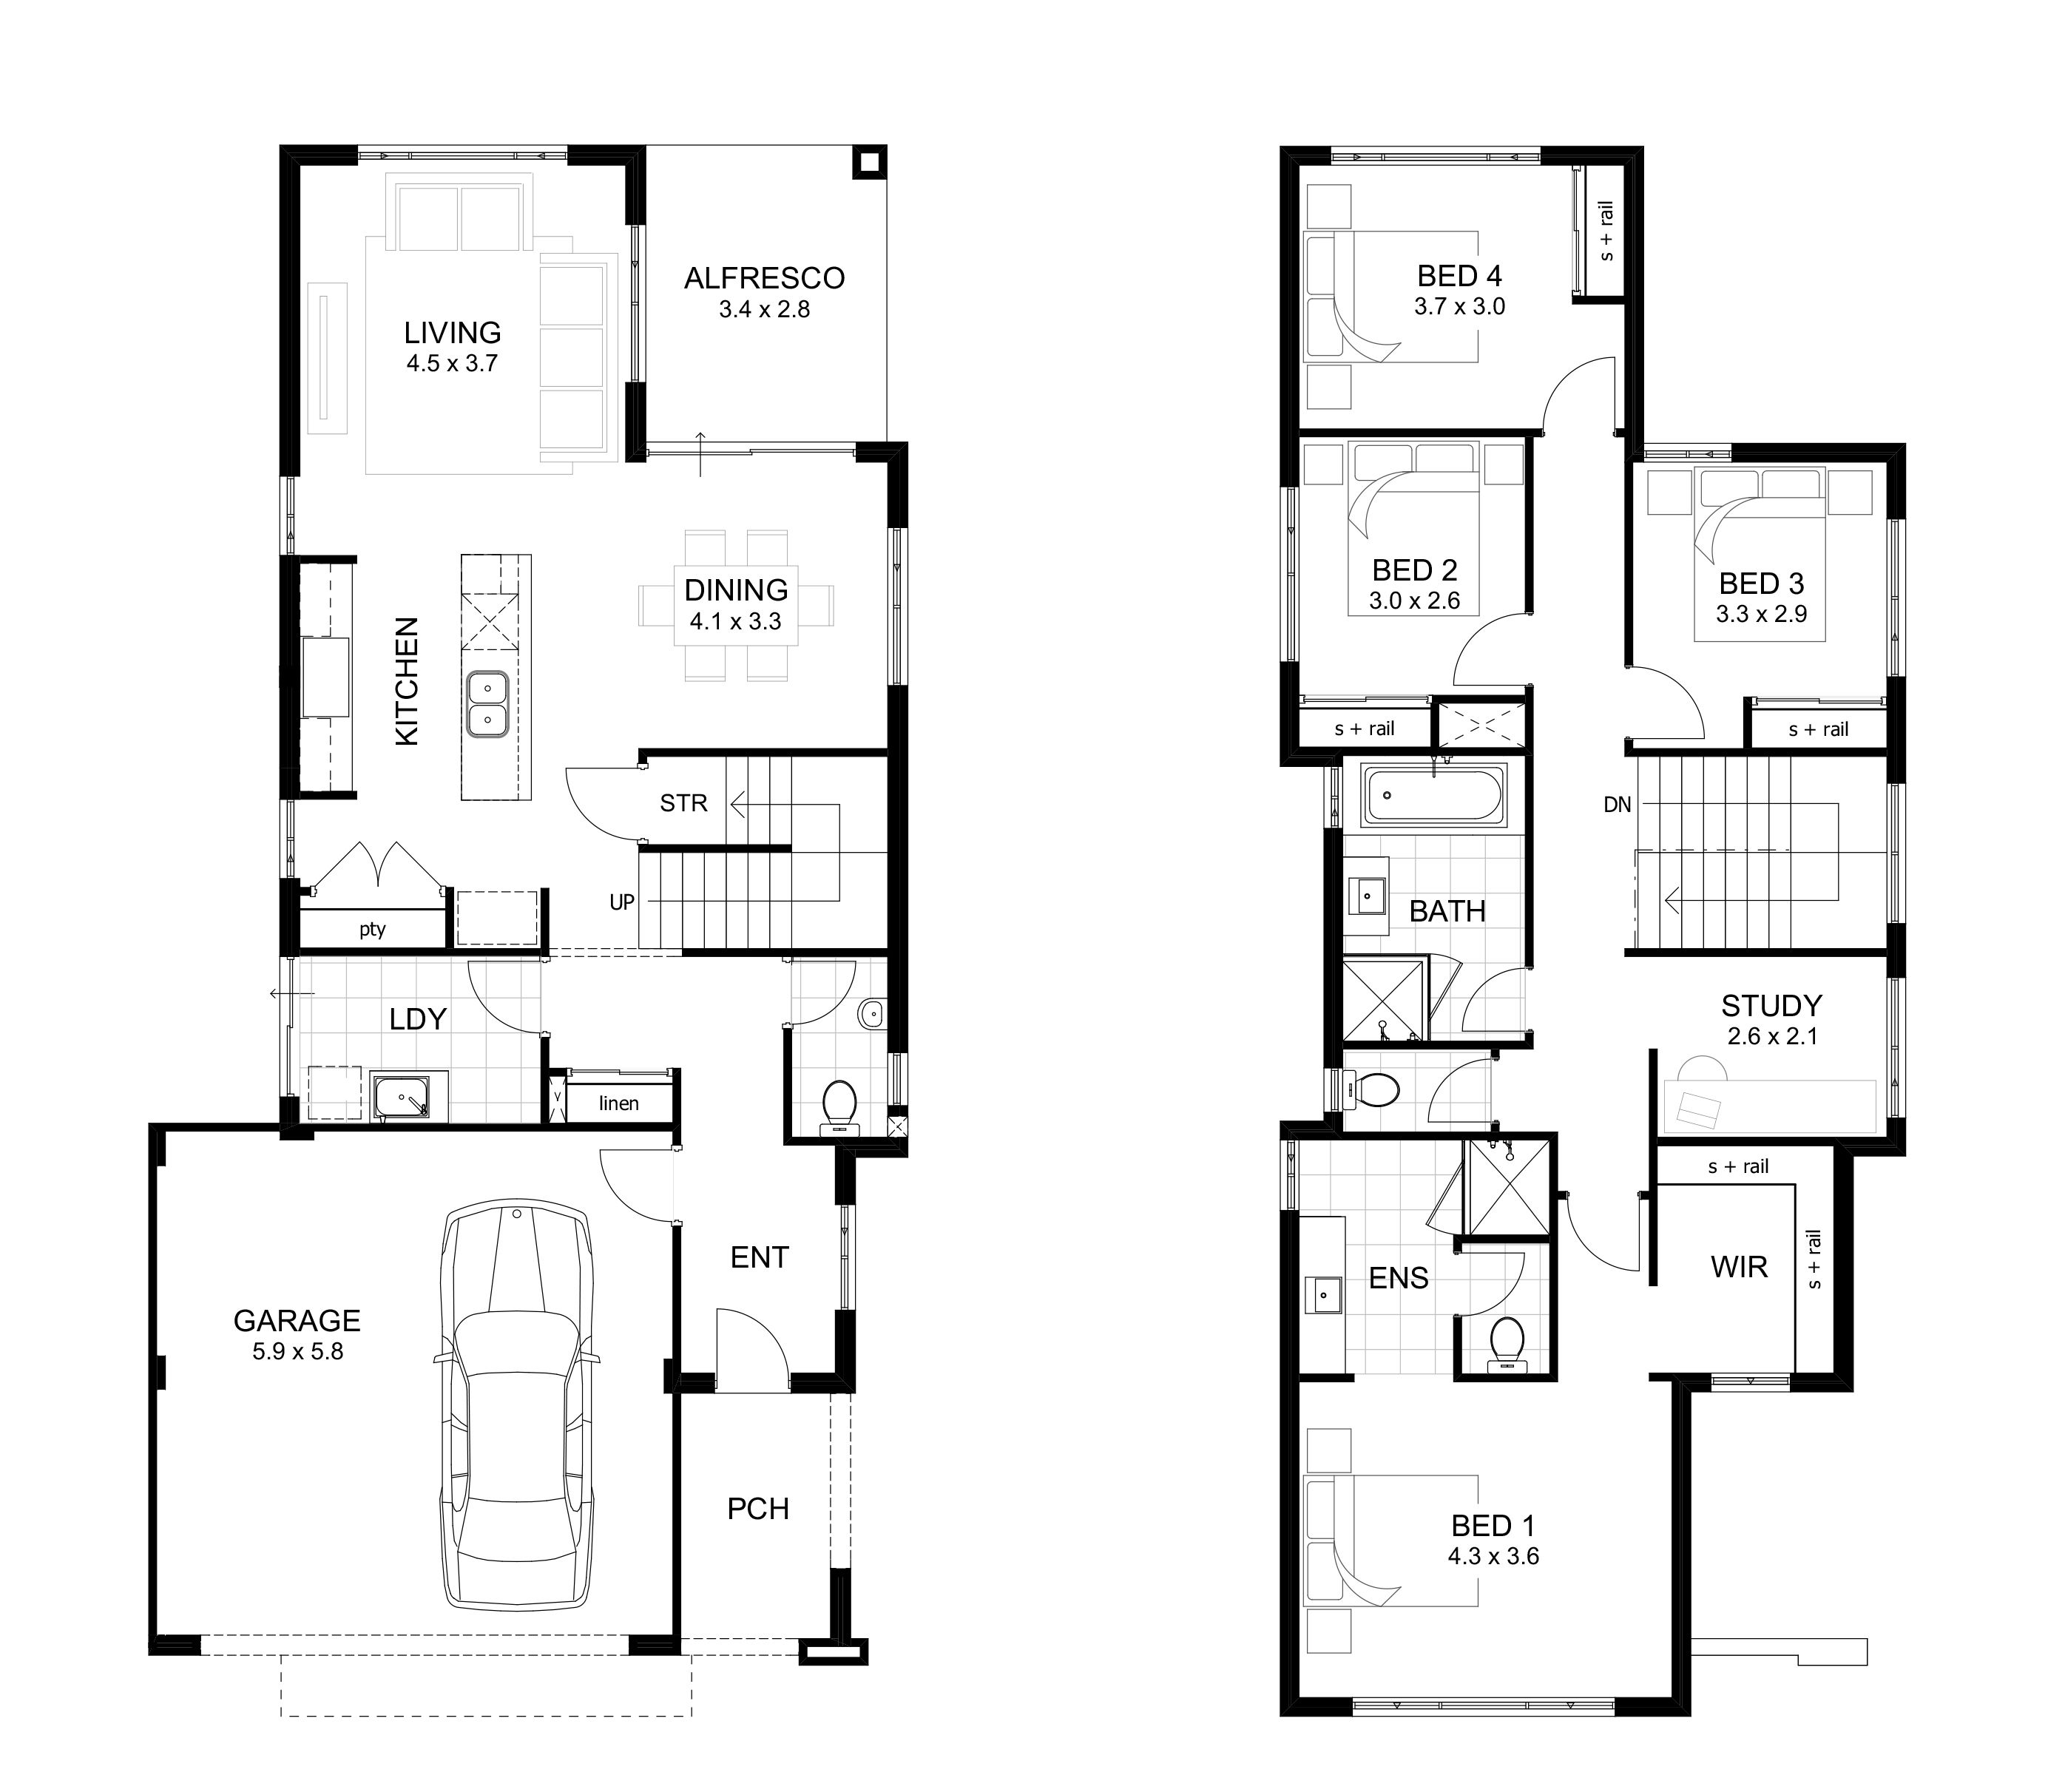 Double Storey 4 Bedroom House Designs Perth | apg Homes ...